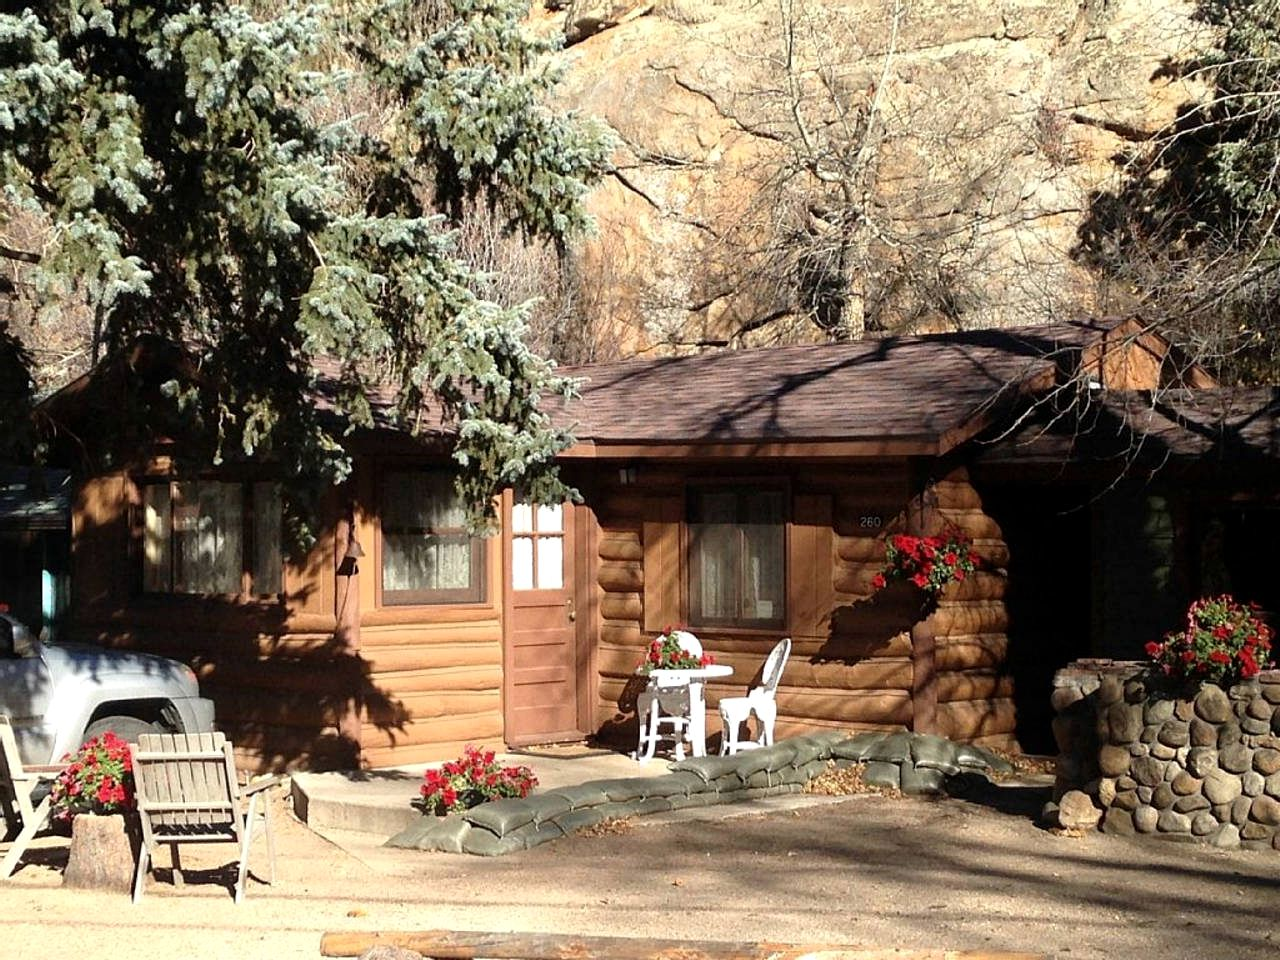 Cabins (Estes Park, Colorado, United States)